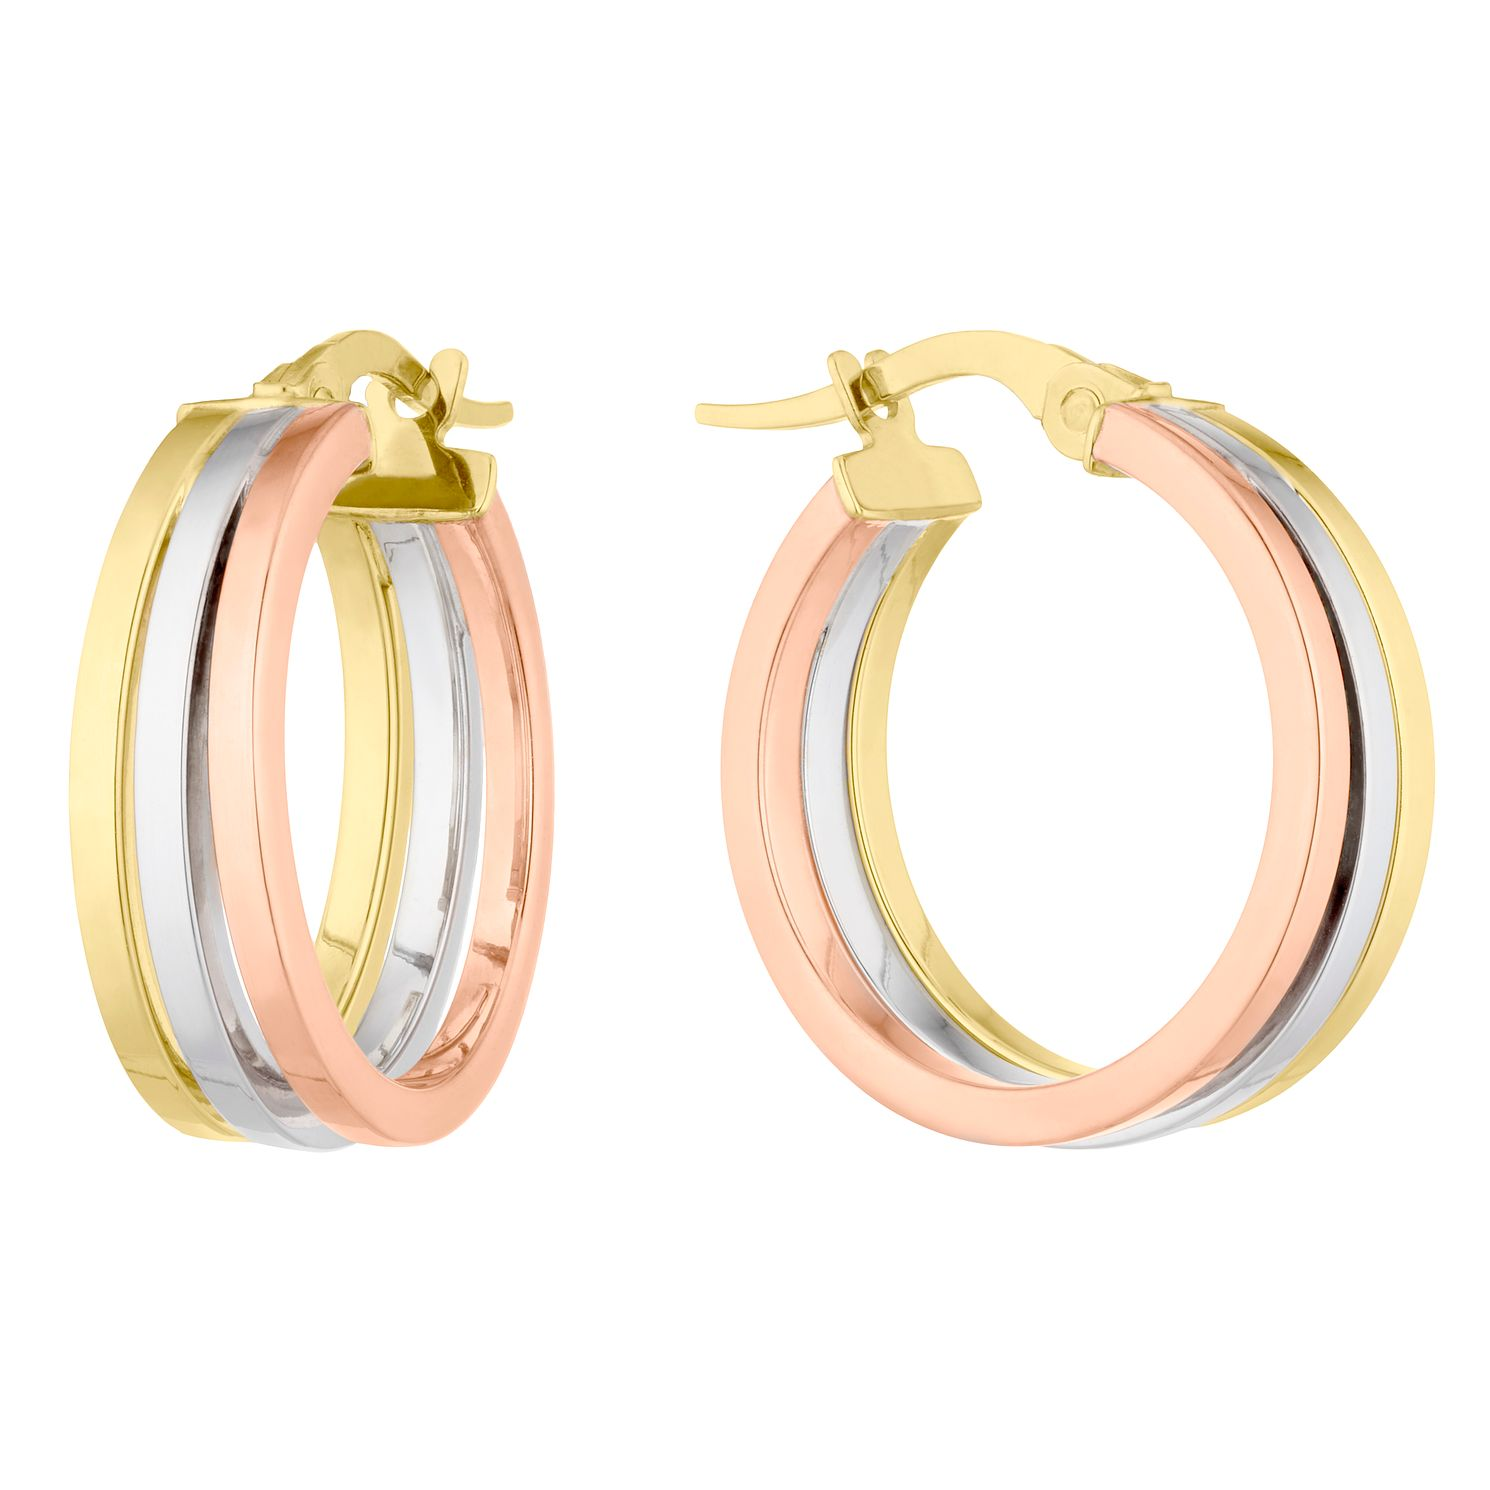 9ct Three Colour Gold Hoop Earrings - Product number 4897315